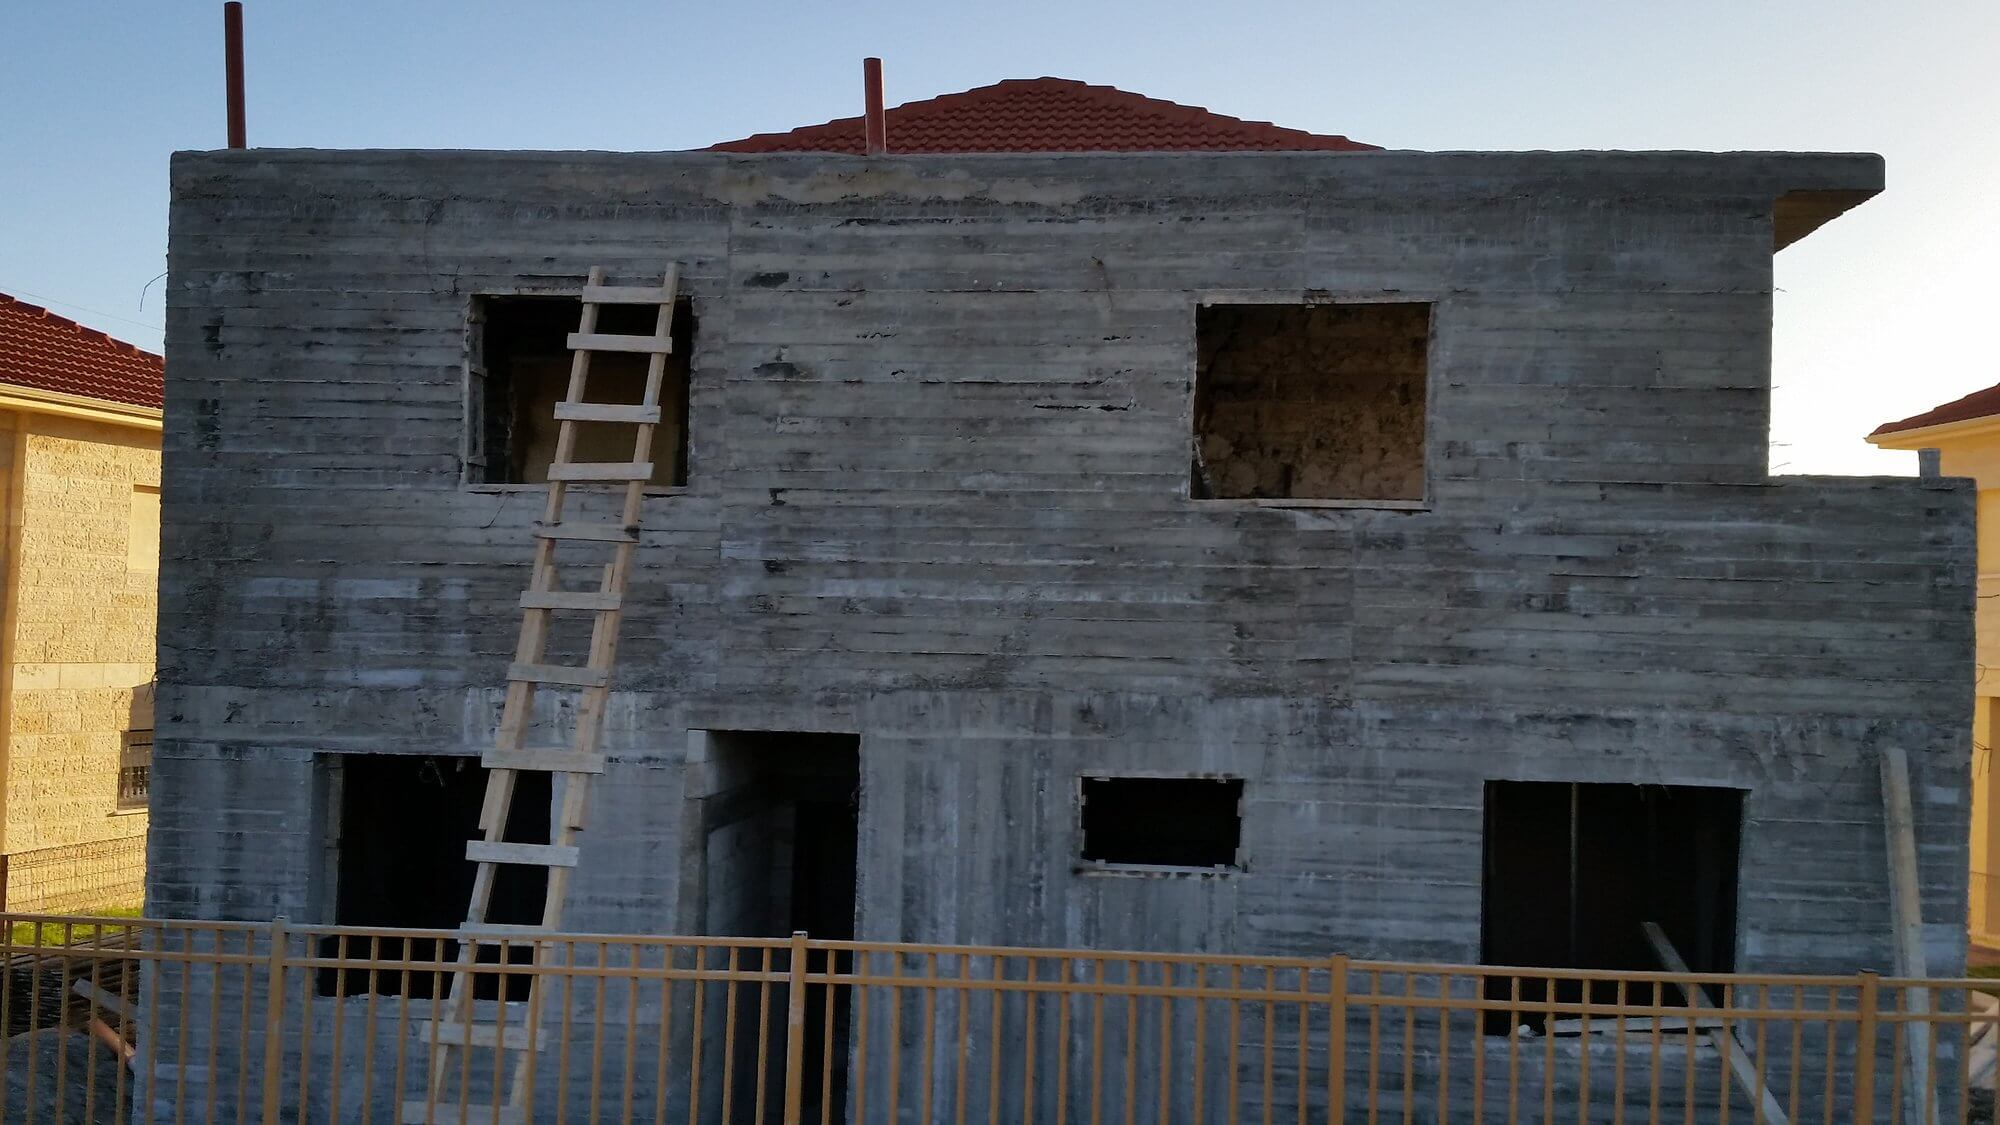 House under construction in Ofra, a Jewish settlement deep in the occupied West Bank (photo by Phil Weiss)